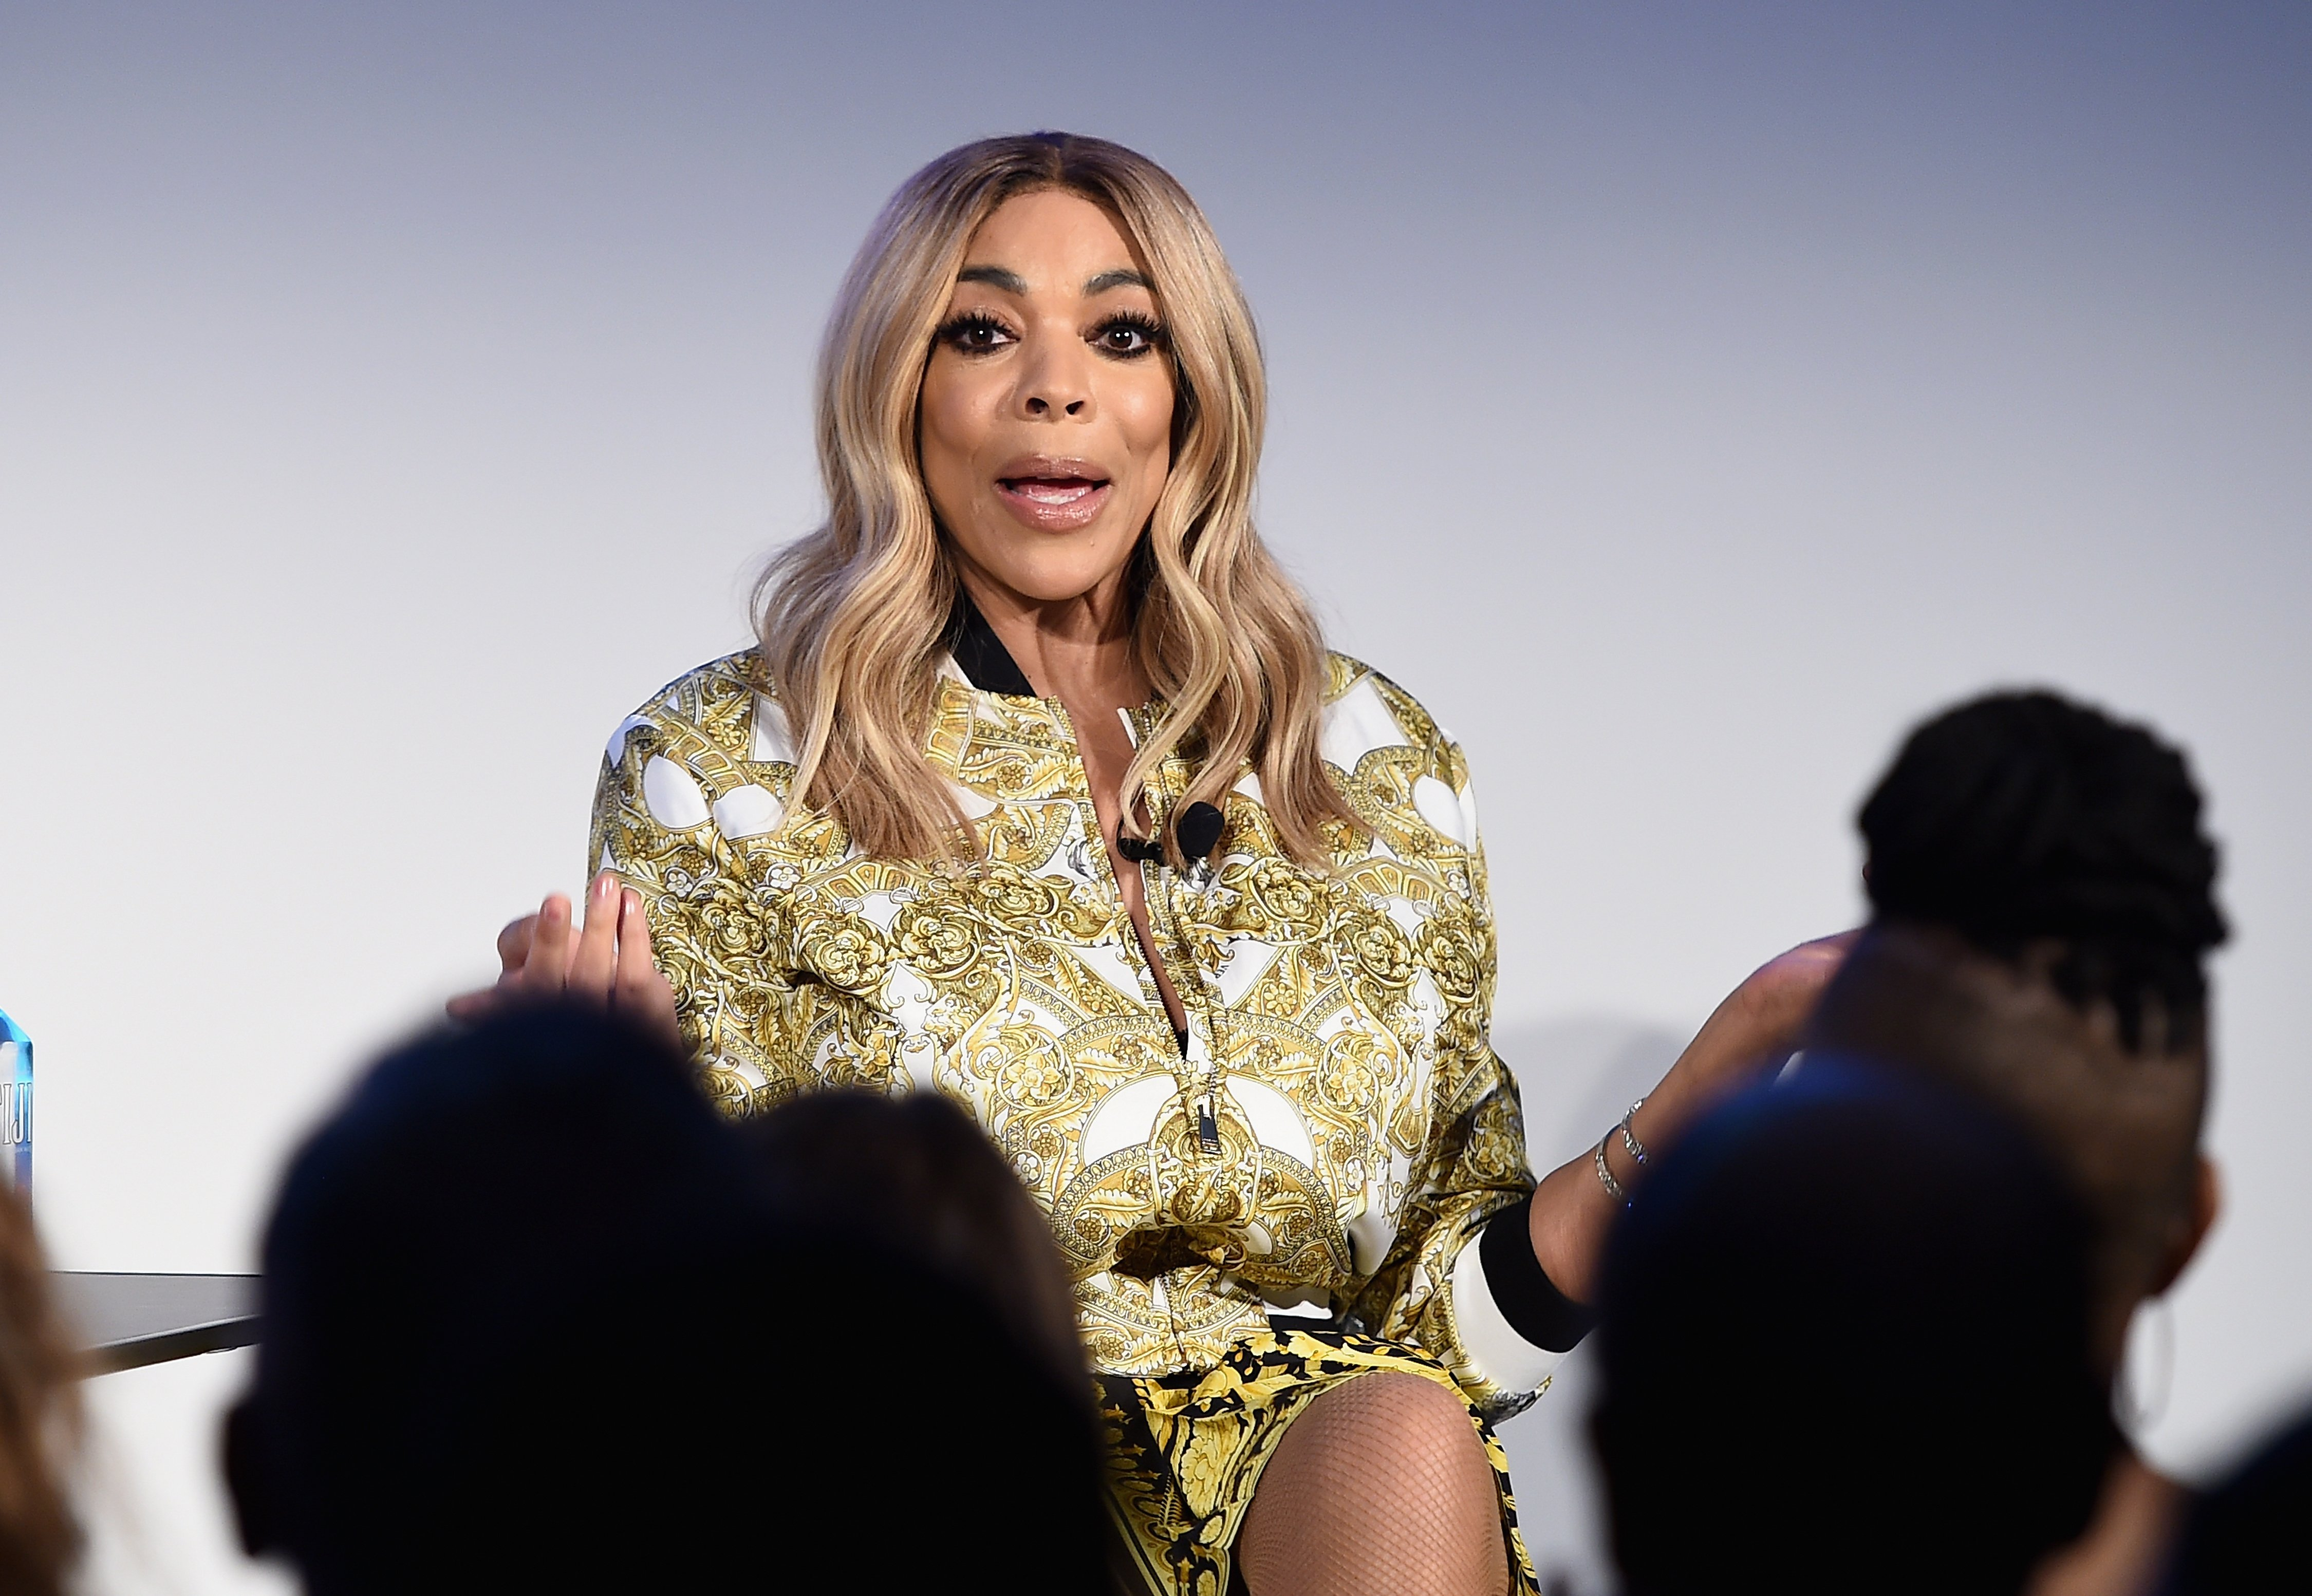 Wendy Williams at Vulture Festival on May 19, 2018 in New York City | Photo: Getty Images